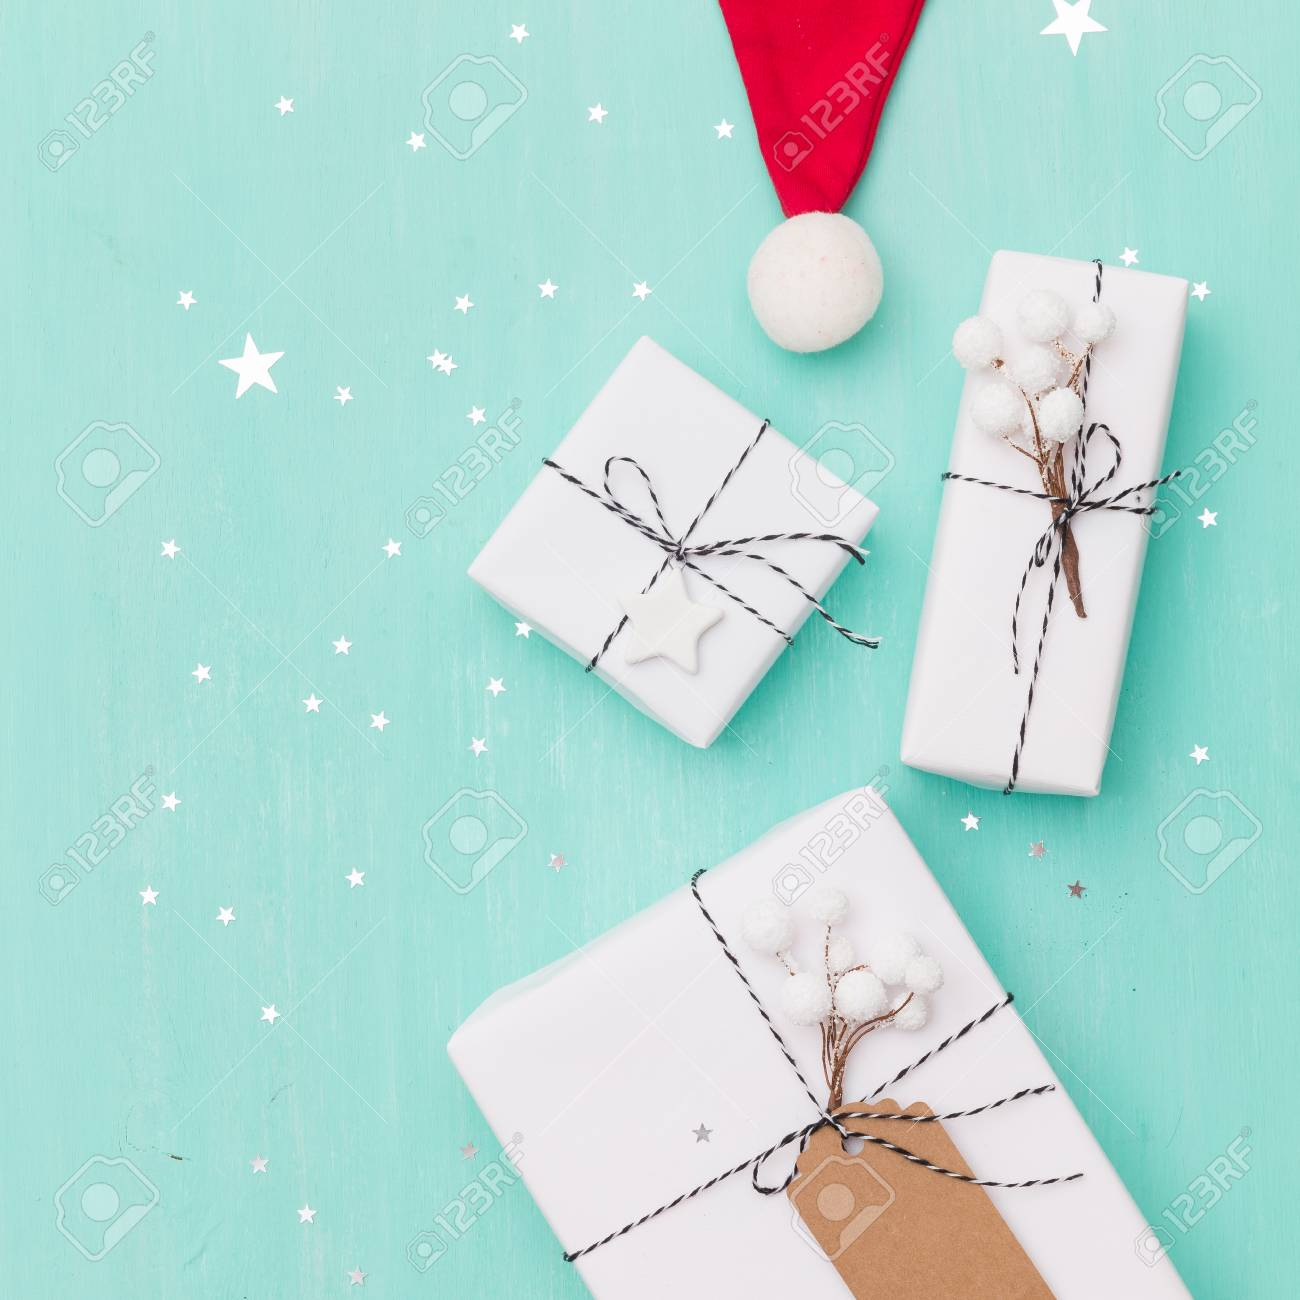 banque dimages closeup of nice christmas gifts wrapped in white paper christmas tree decorations santas hat on wooden background with sparkling stars - Nice Christmas Gifts